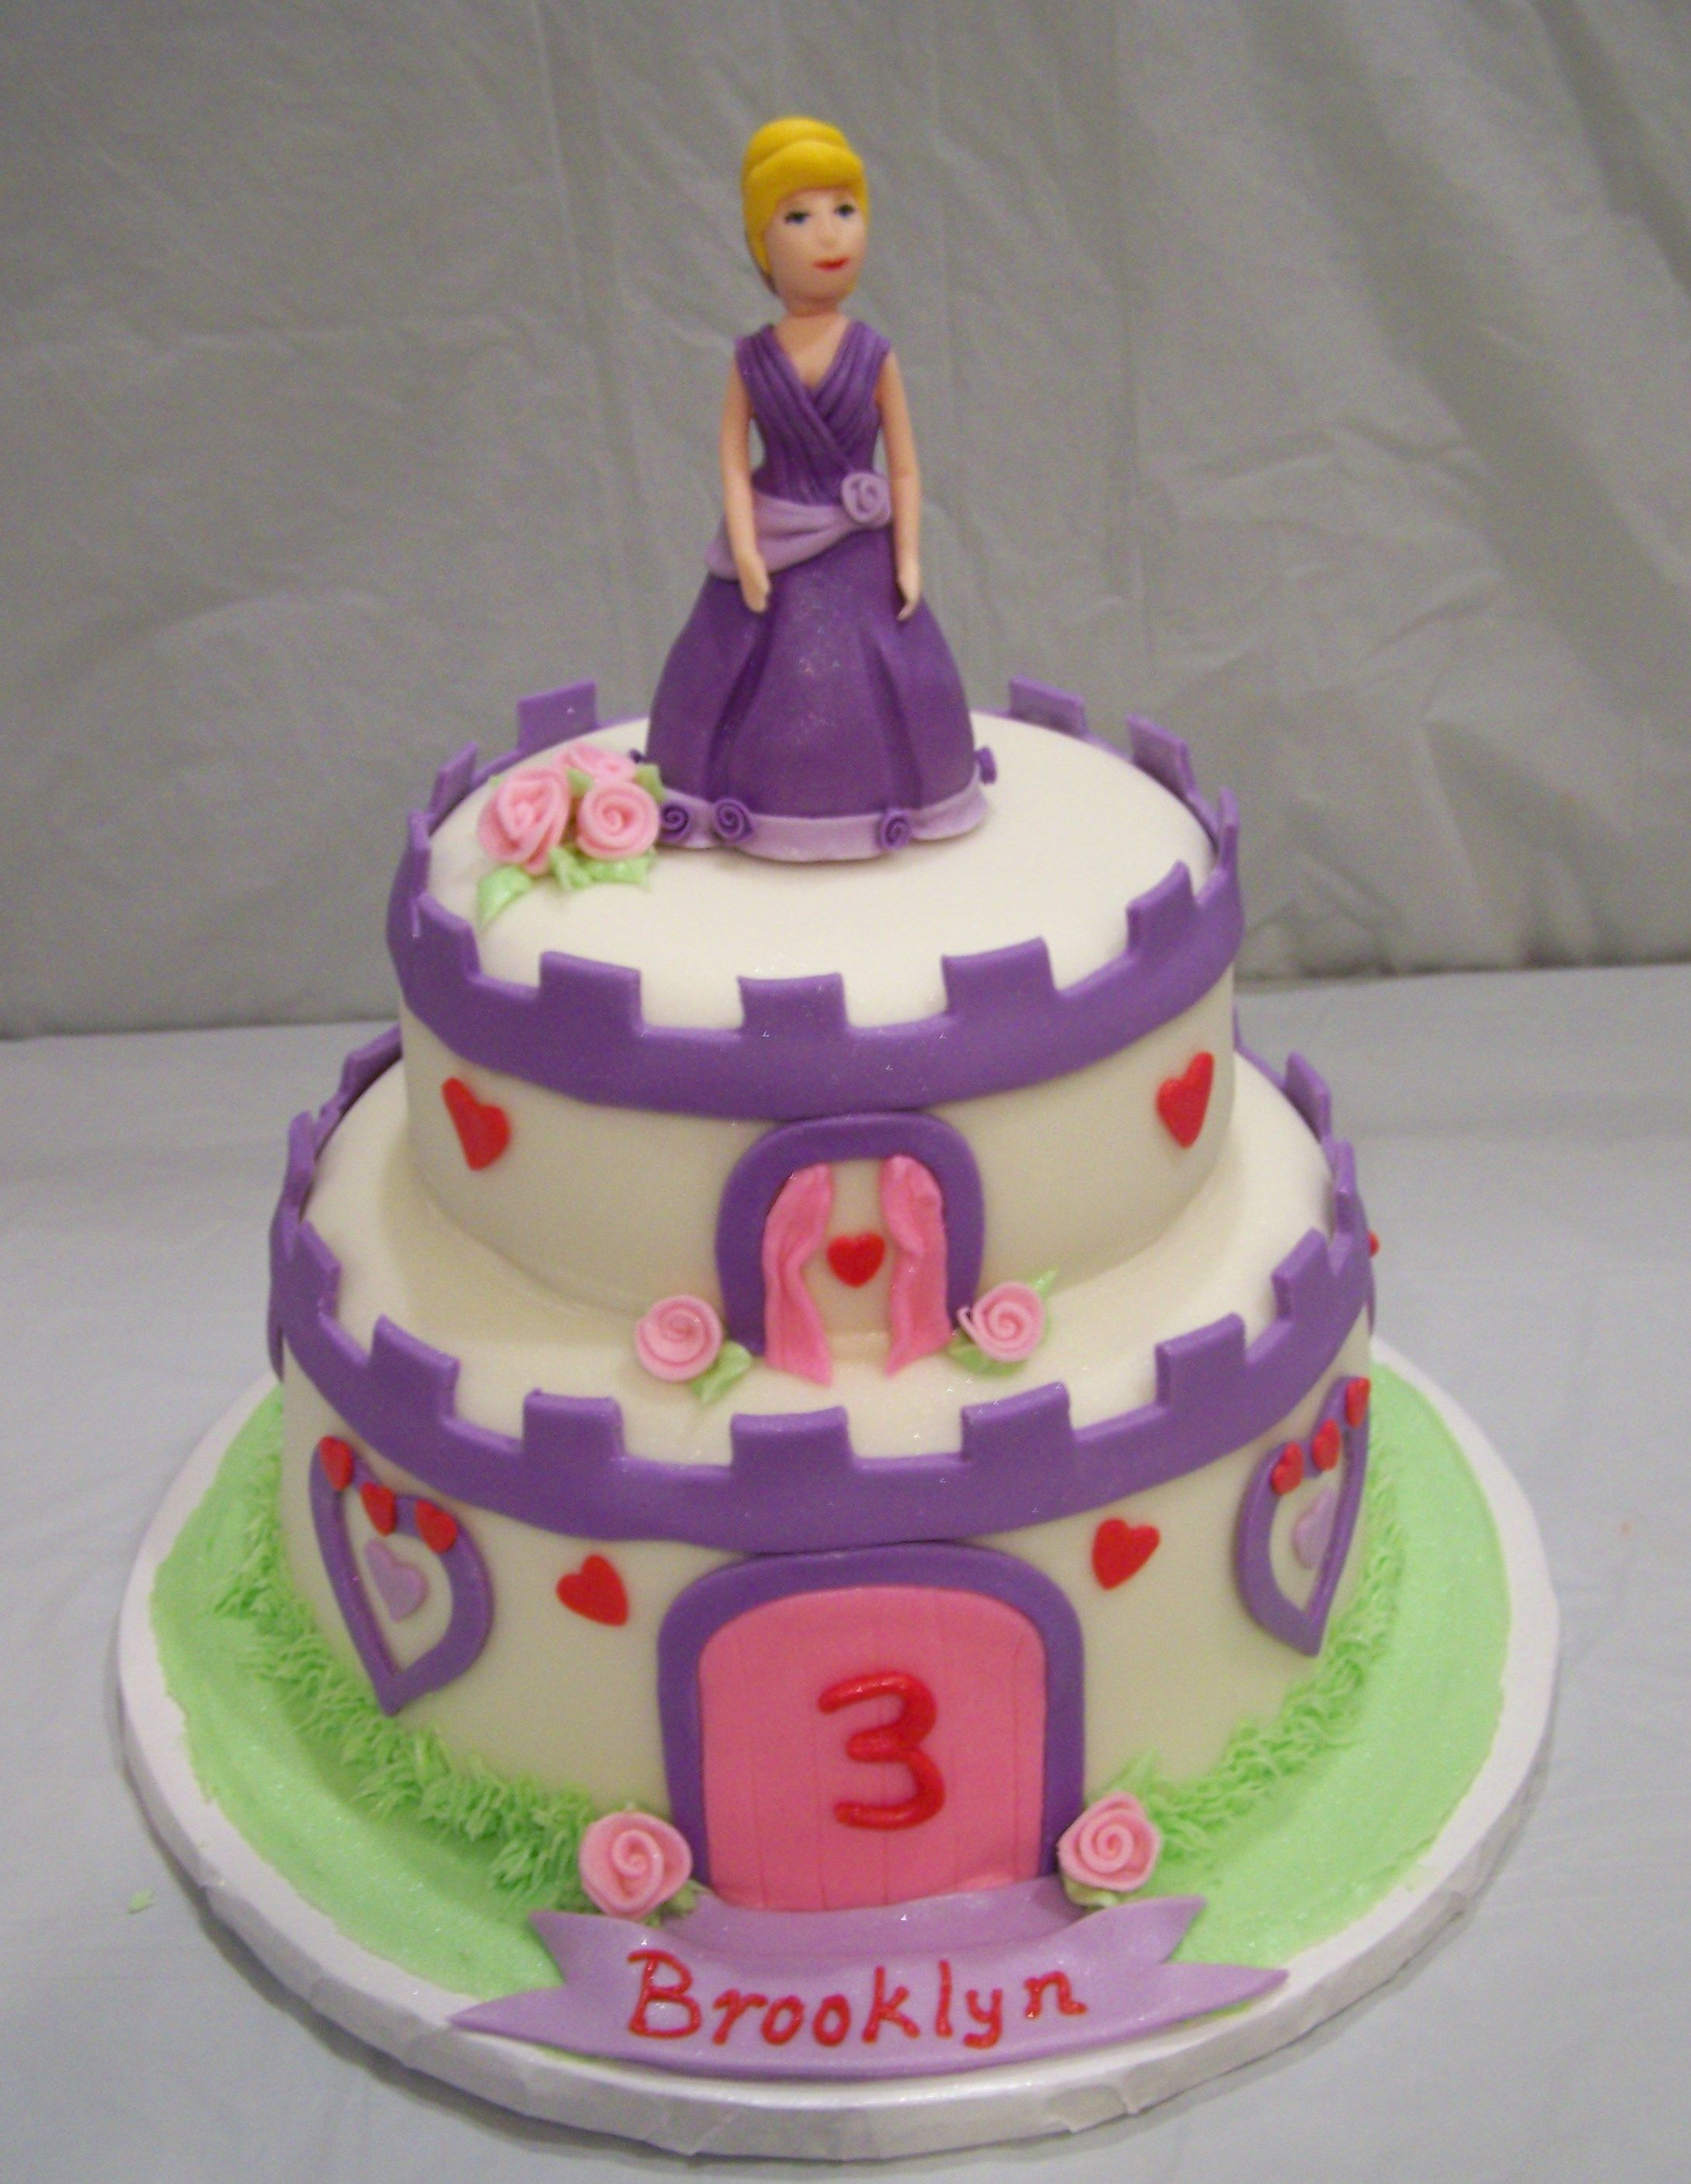 Cinderella princess cake with edible fondant figure cakes Ive